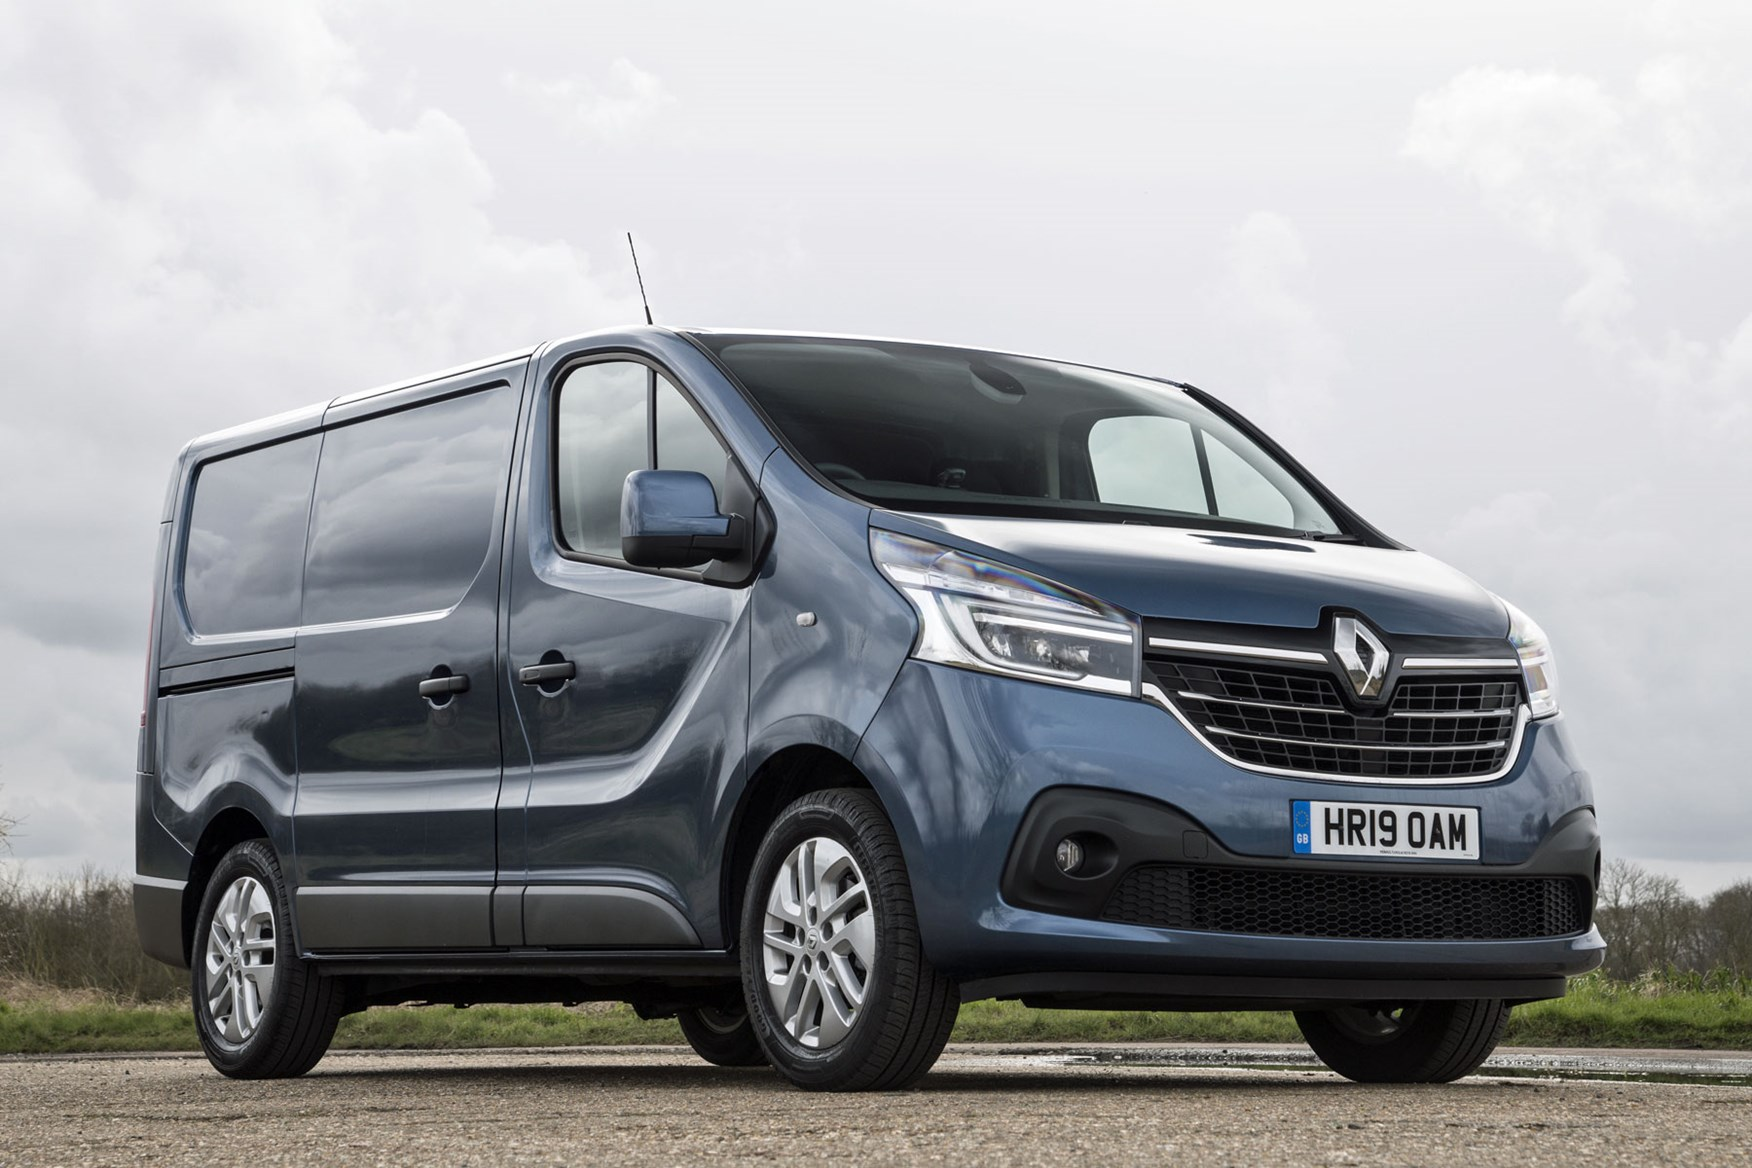 Renault trafic review - facelift, front view, 2020, blue